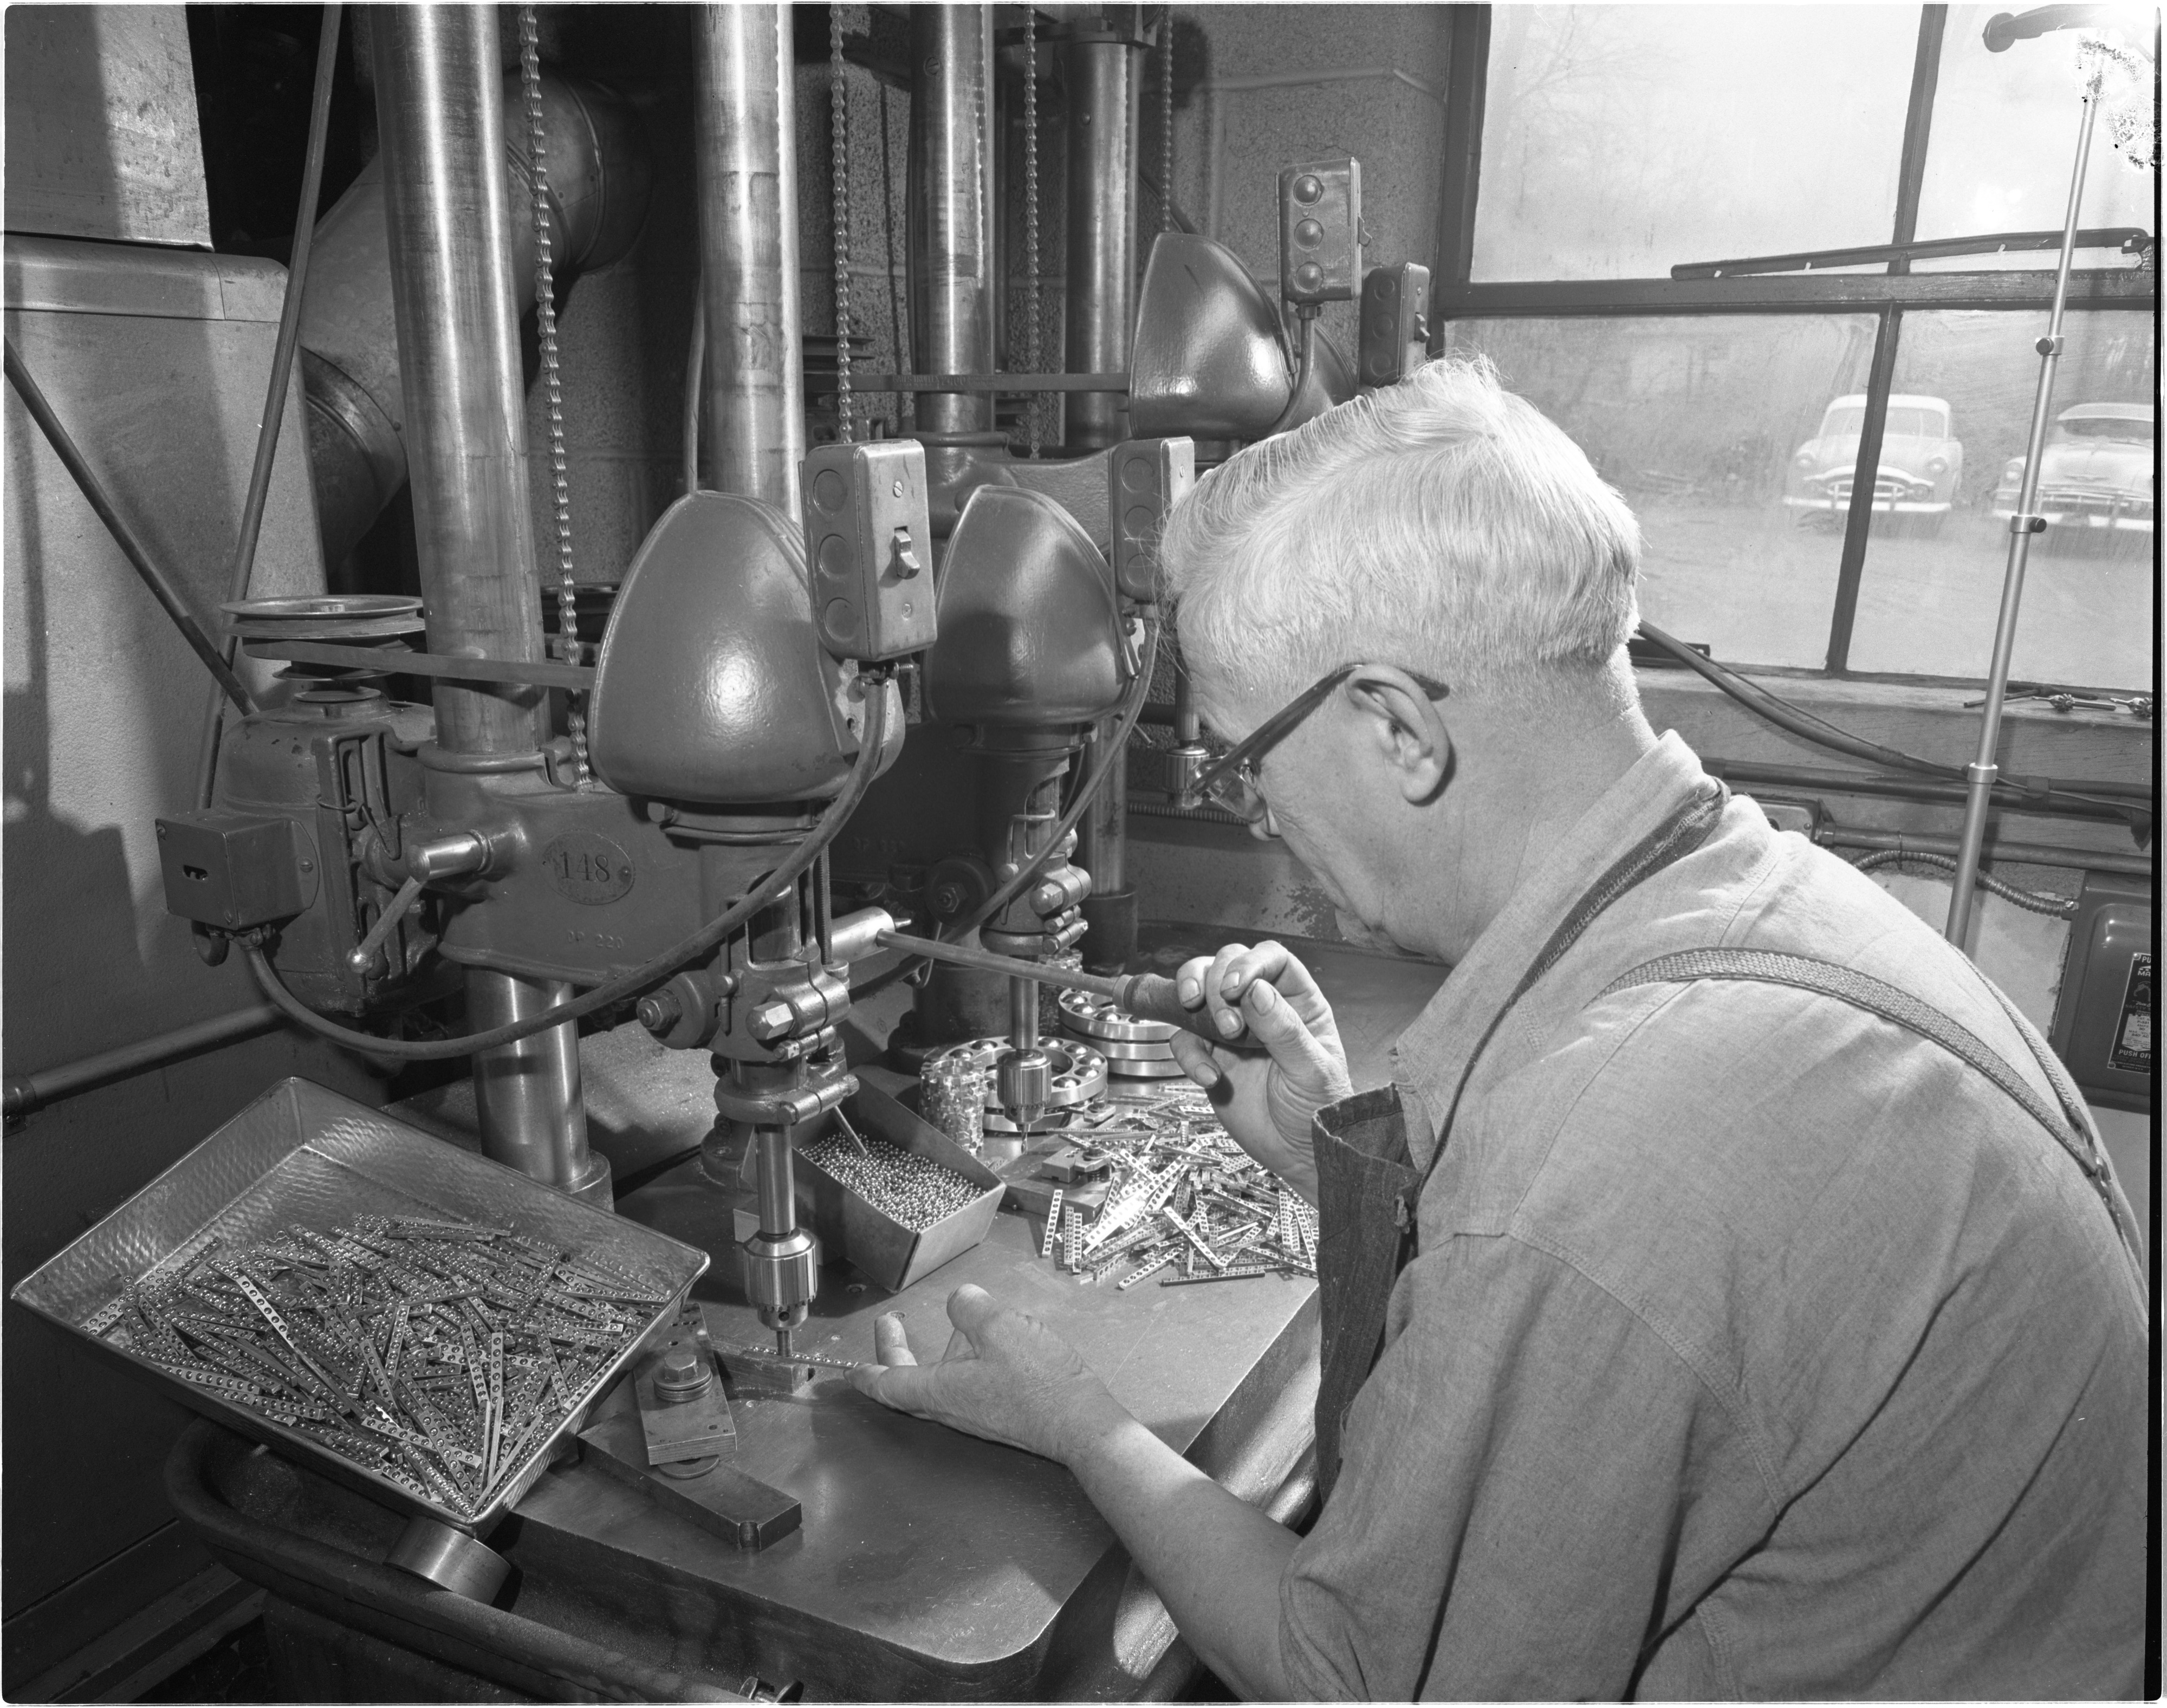 Henry Heinzman Operates A Press Machine At The Morton Bearing Company, December 1954 image